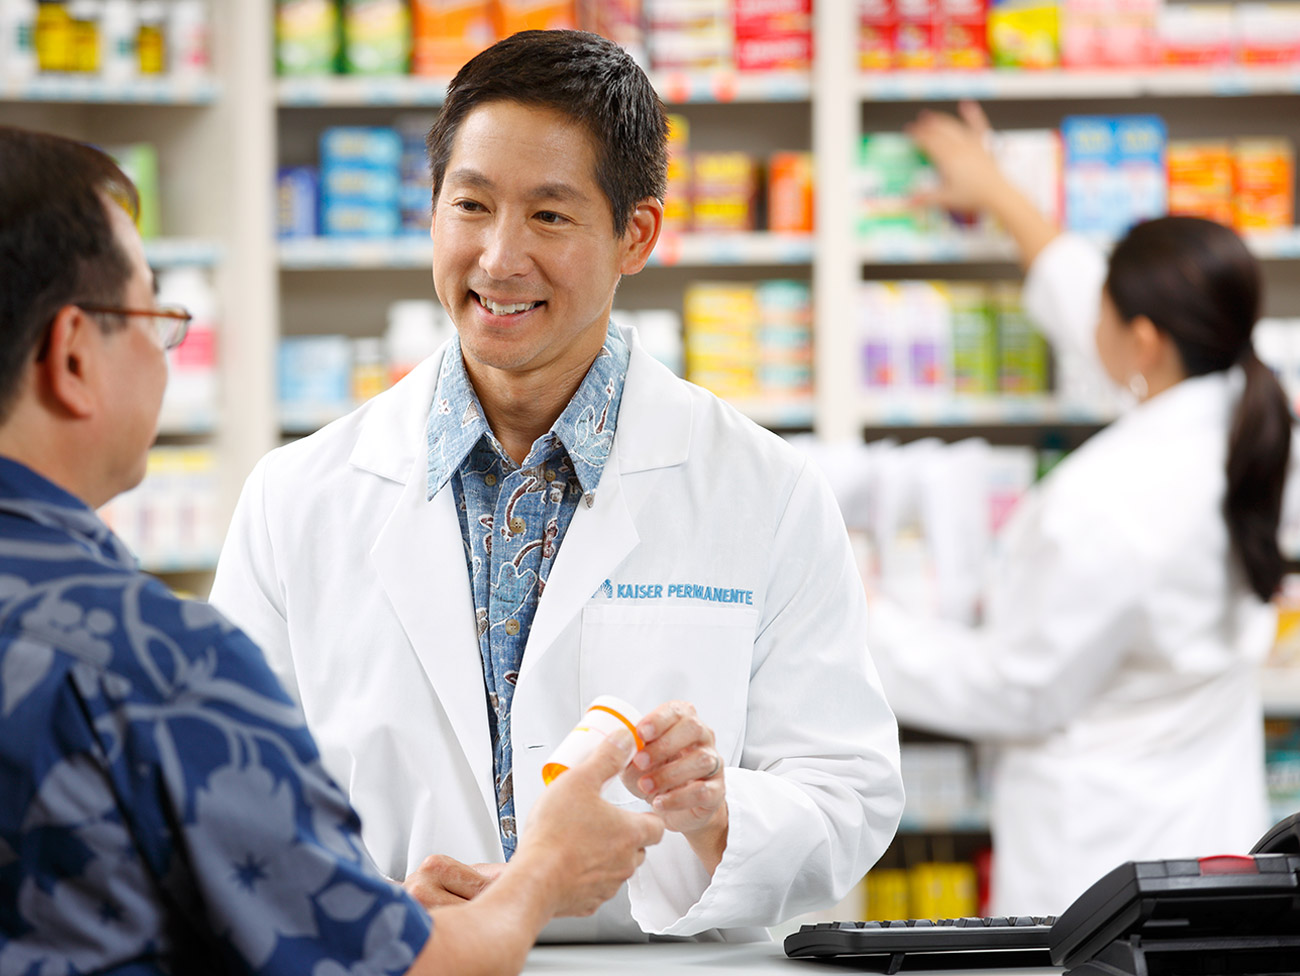 The expanding role of pharmacists in patient care | Kaiser